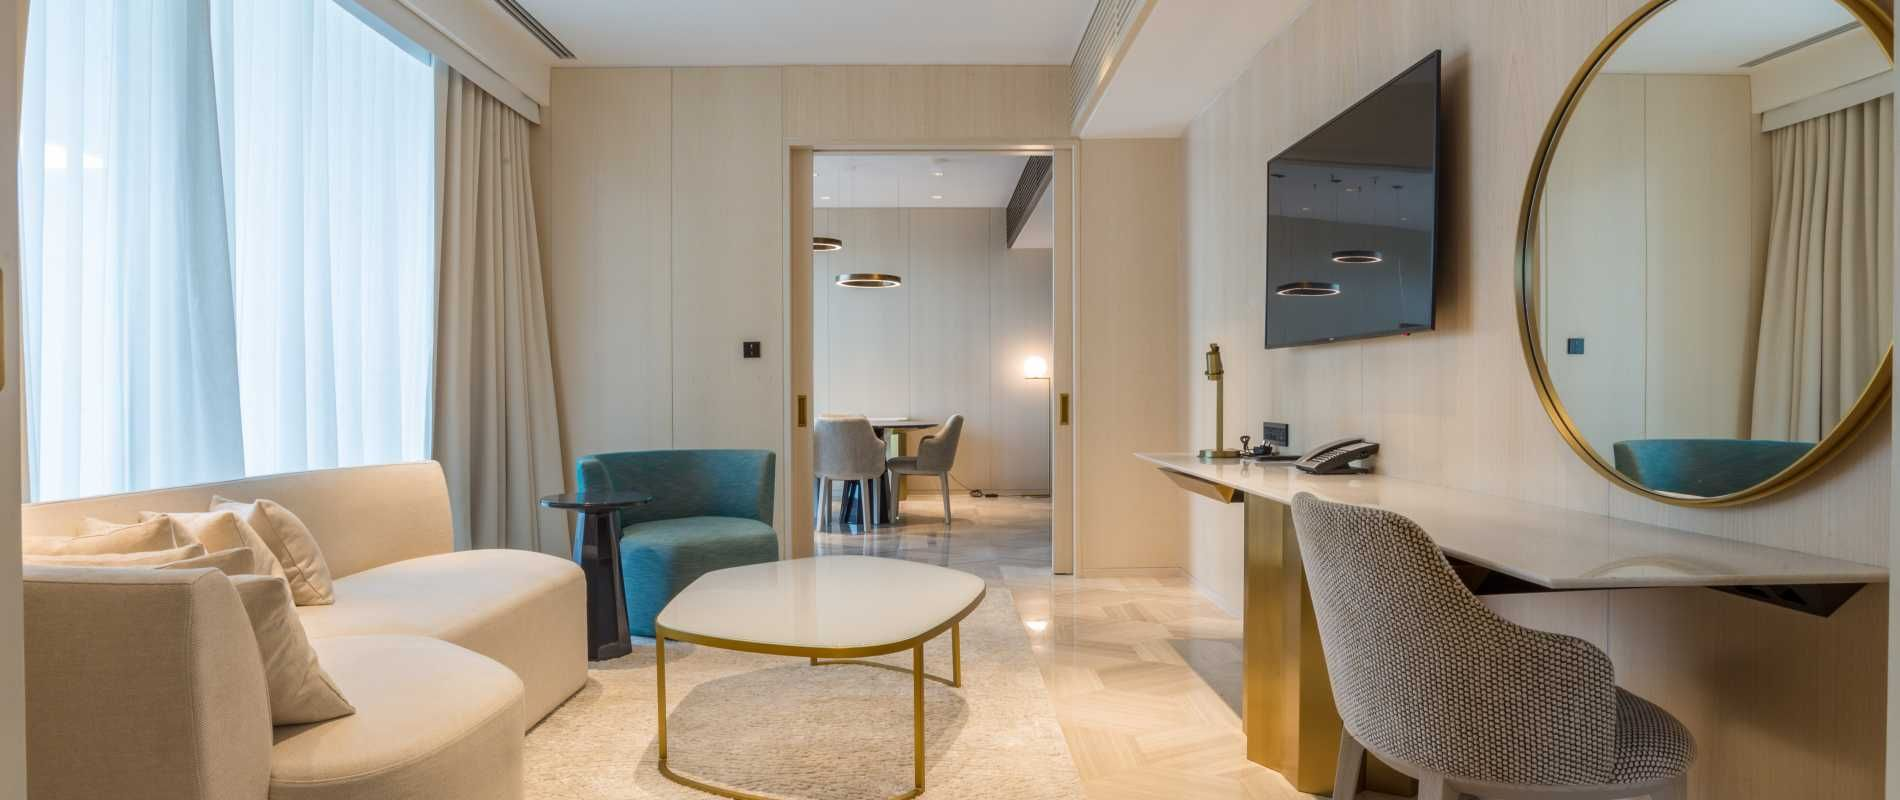 Fully Furnished One Bedroom Hotel Apartment In The Five Palm Jumeirah Dubai Luxurypr Furnished Apartments For Rent One Bedroom Apartment Furnished Apartment